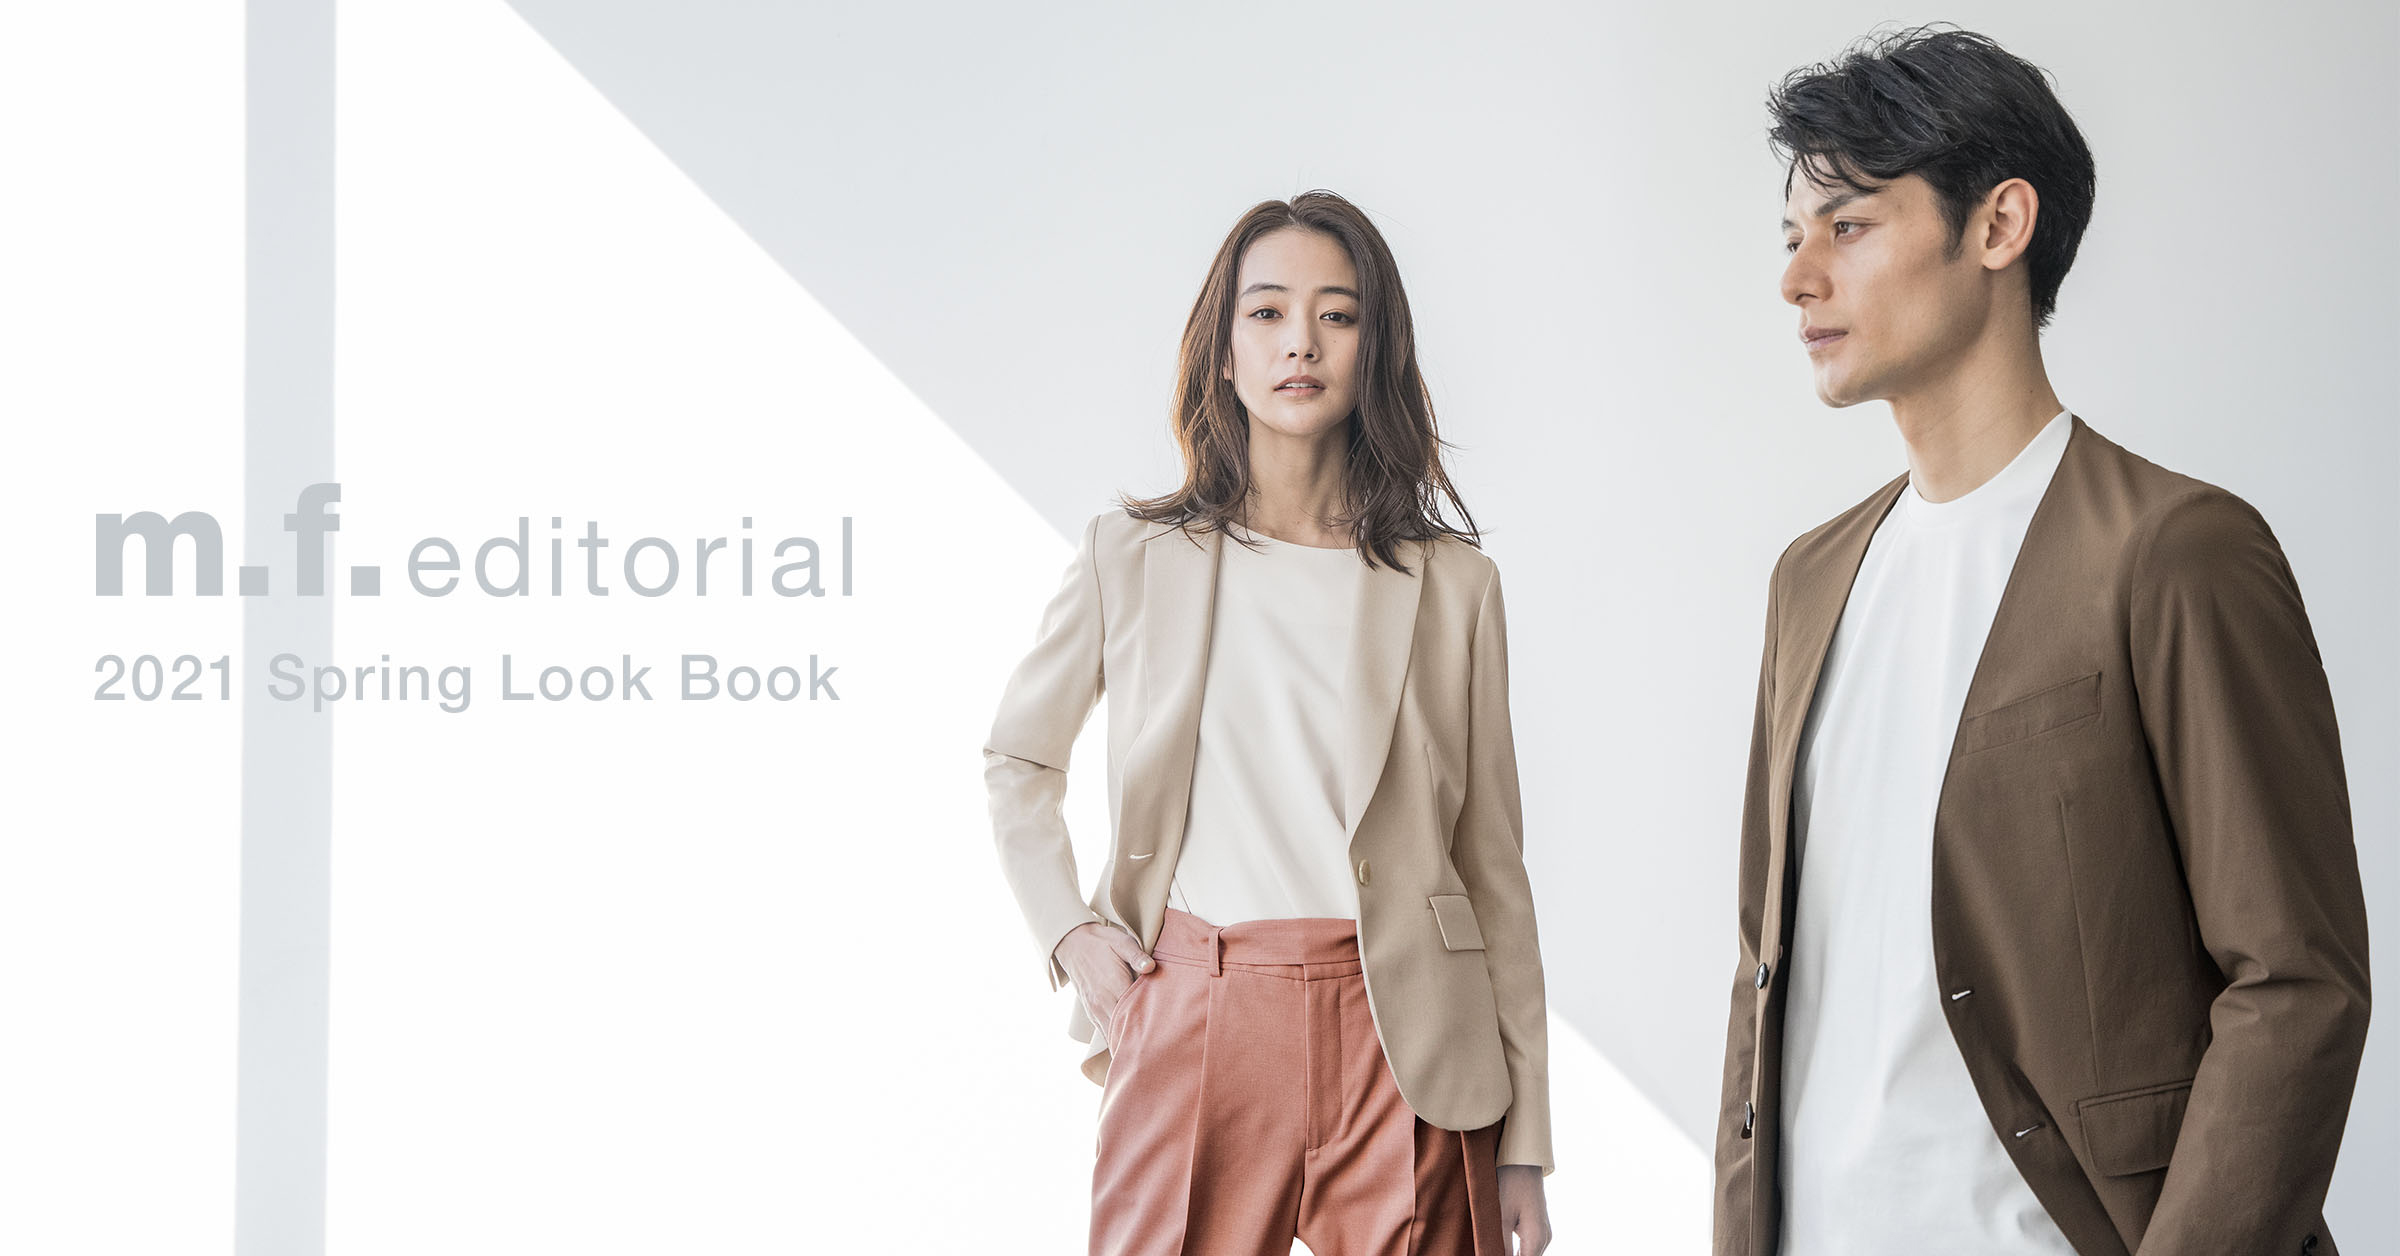 2021 m.f.editorial Spring Look Book